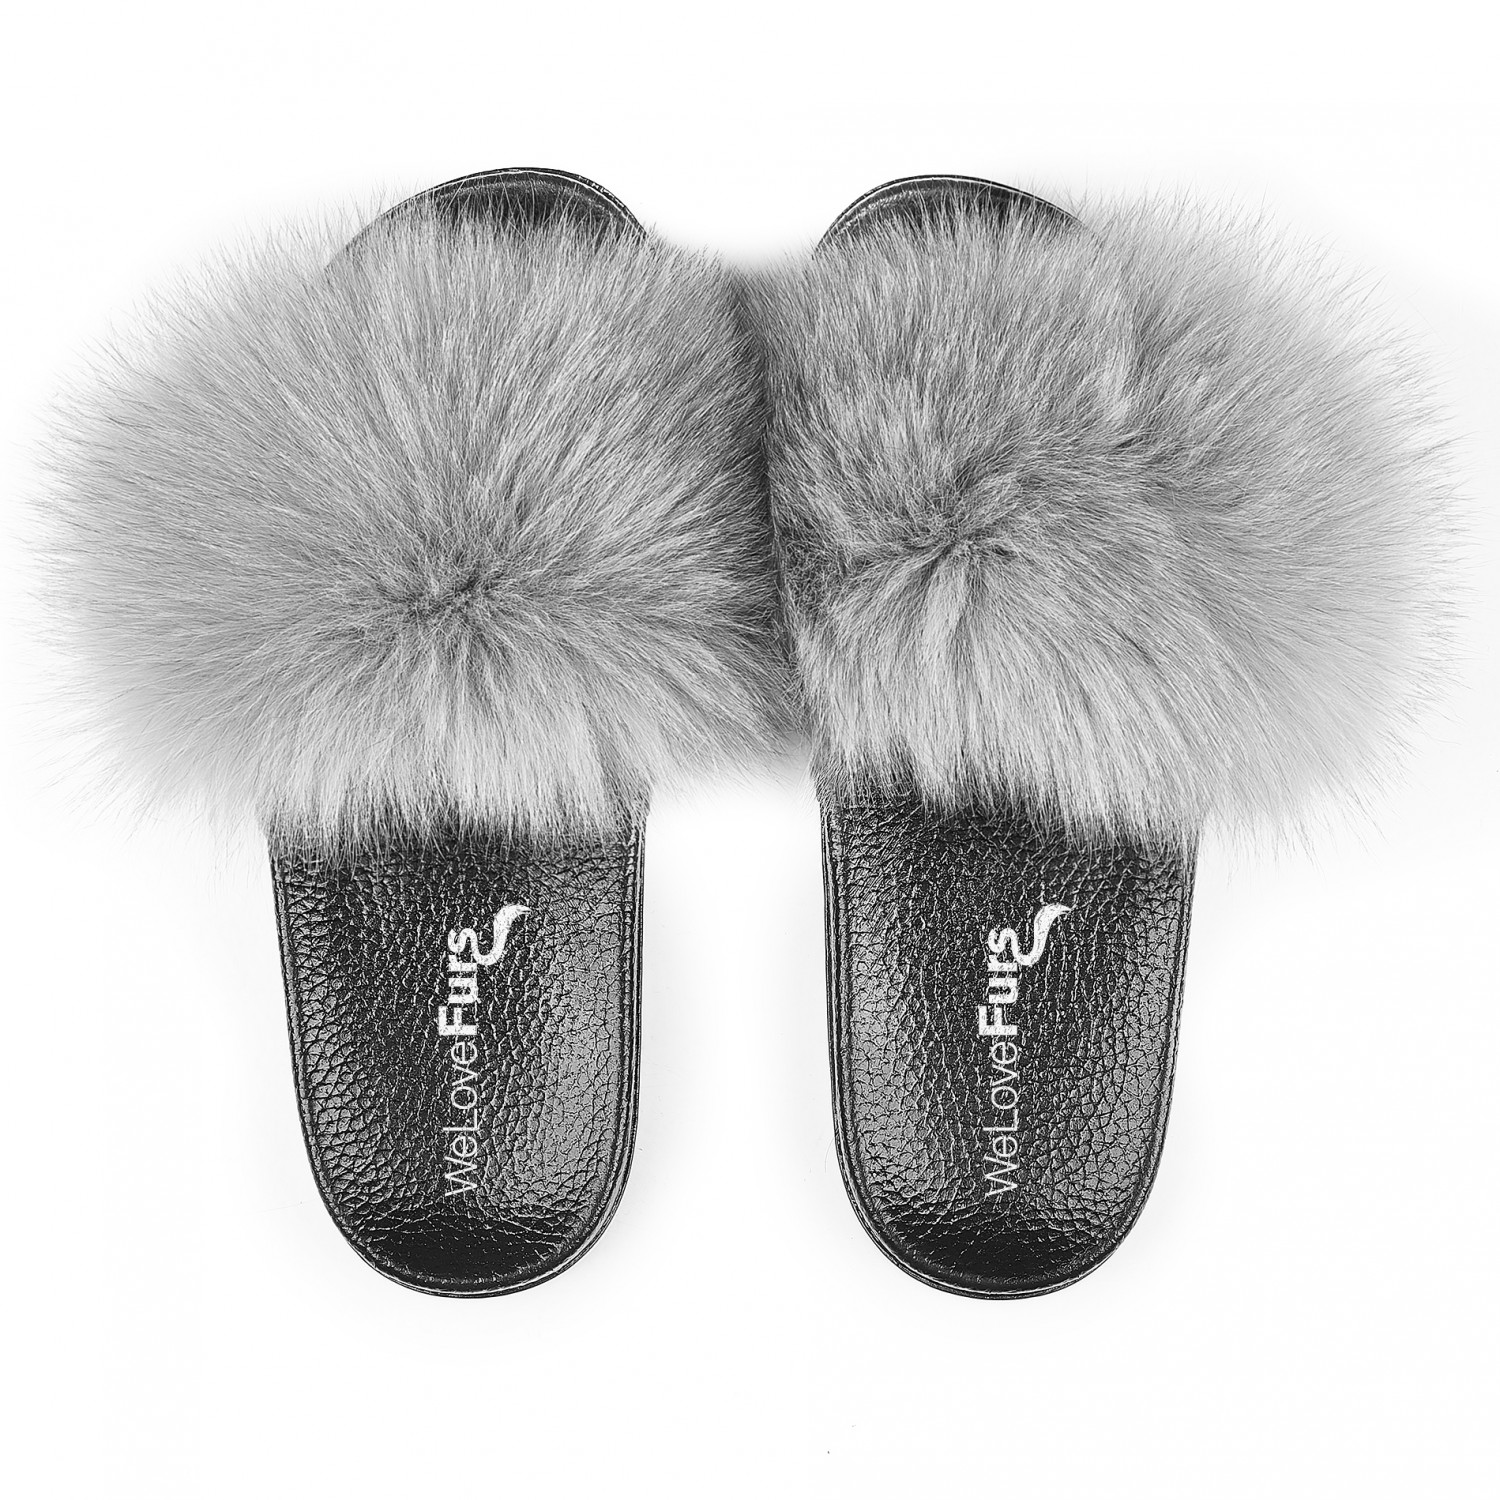 Details about  /Womens Real Fox Fur Soft Slippers Brand Fluffy Raccoon Hair Slides Comfor Shoes